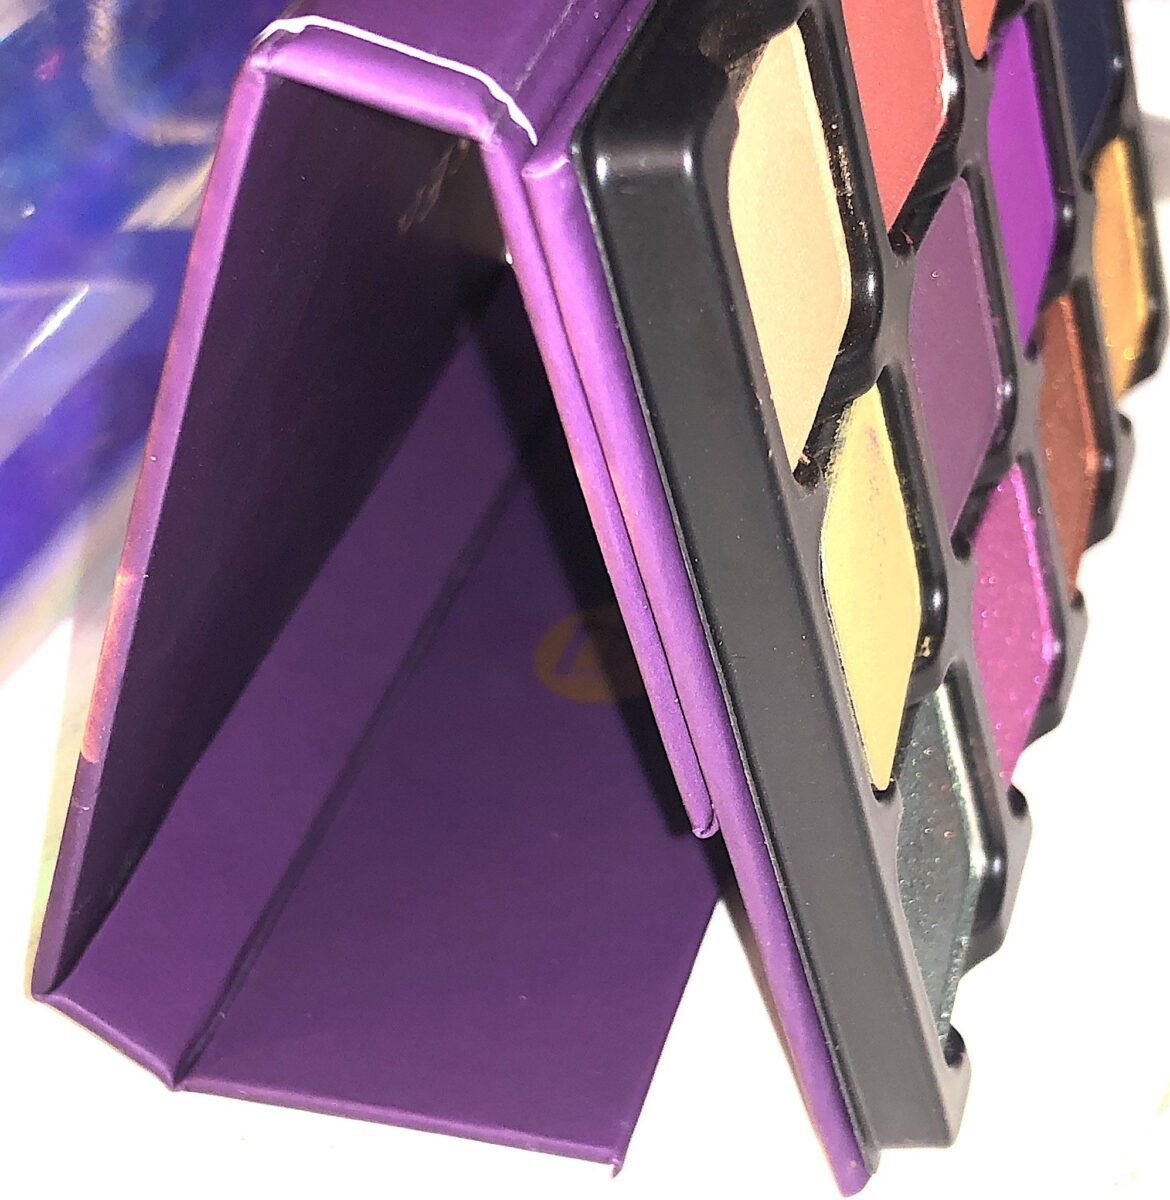 THE VISEART DARK EDIT EYESHADOW PALETTE CONVERTS INTO AN EASEL